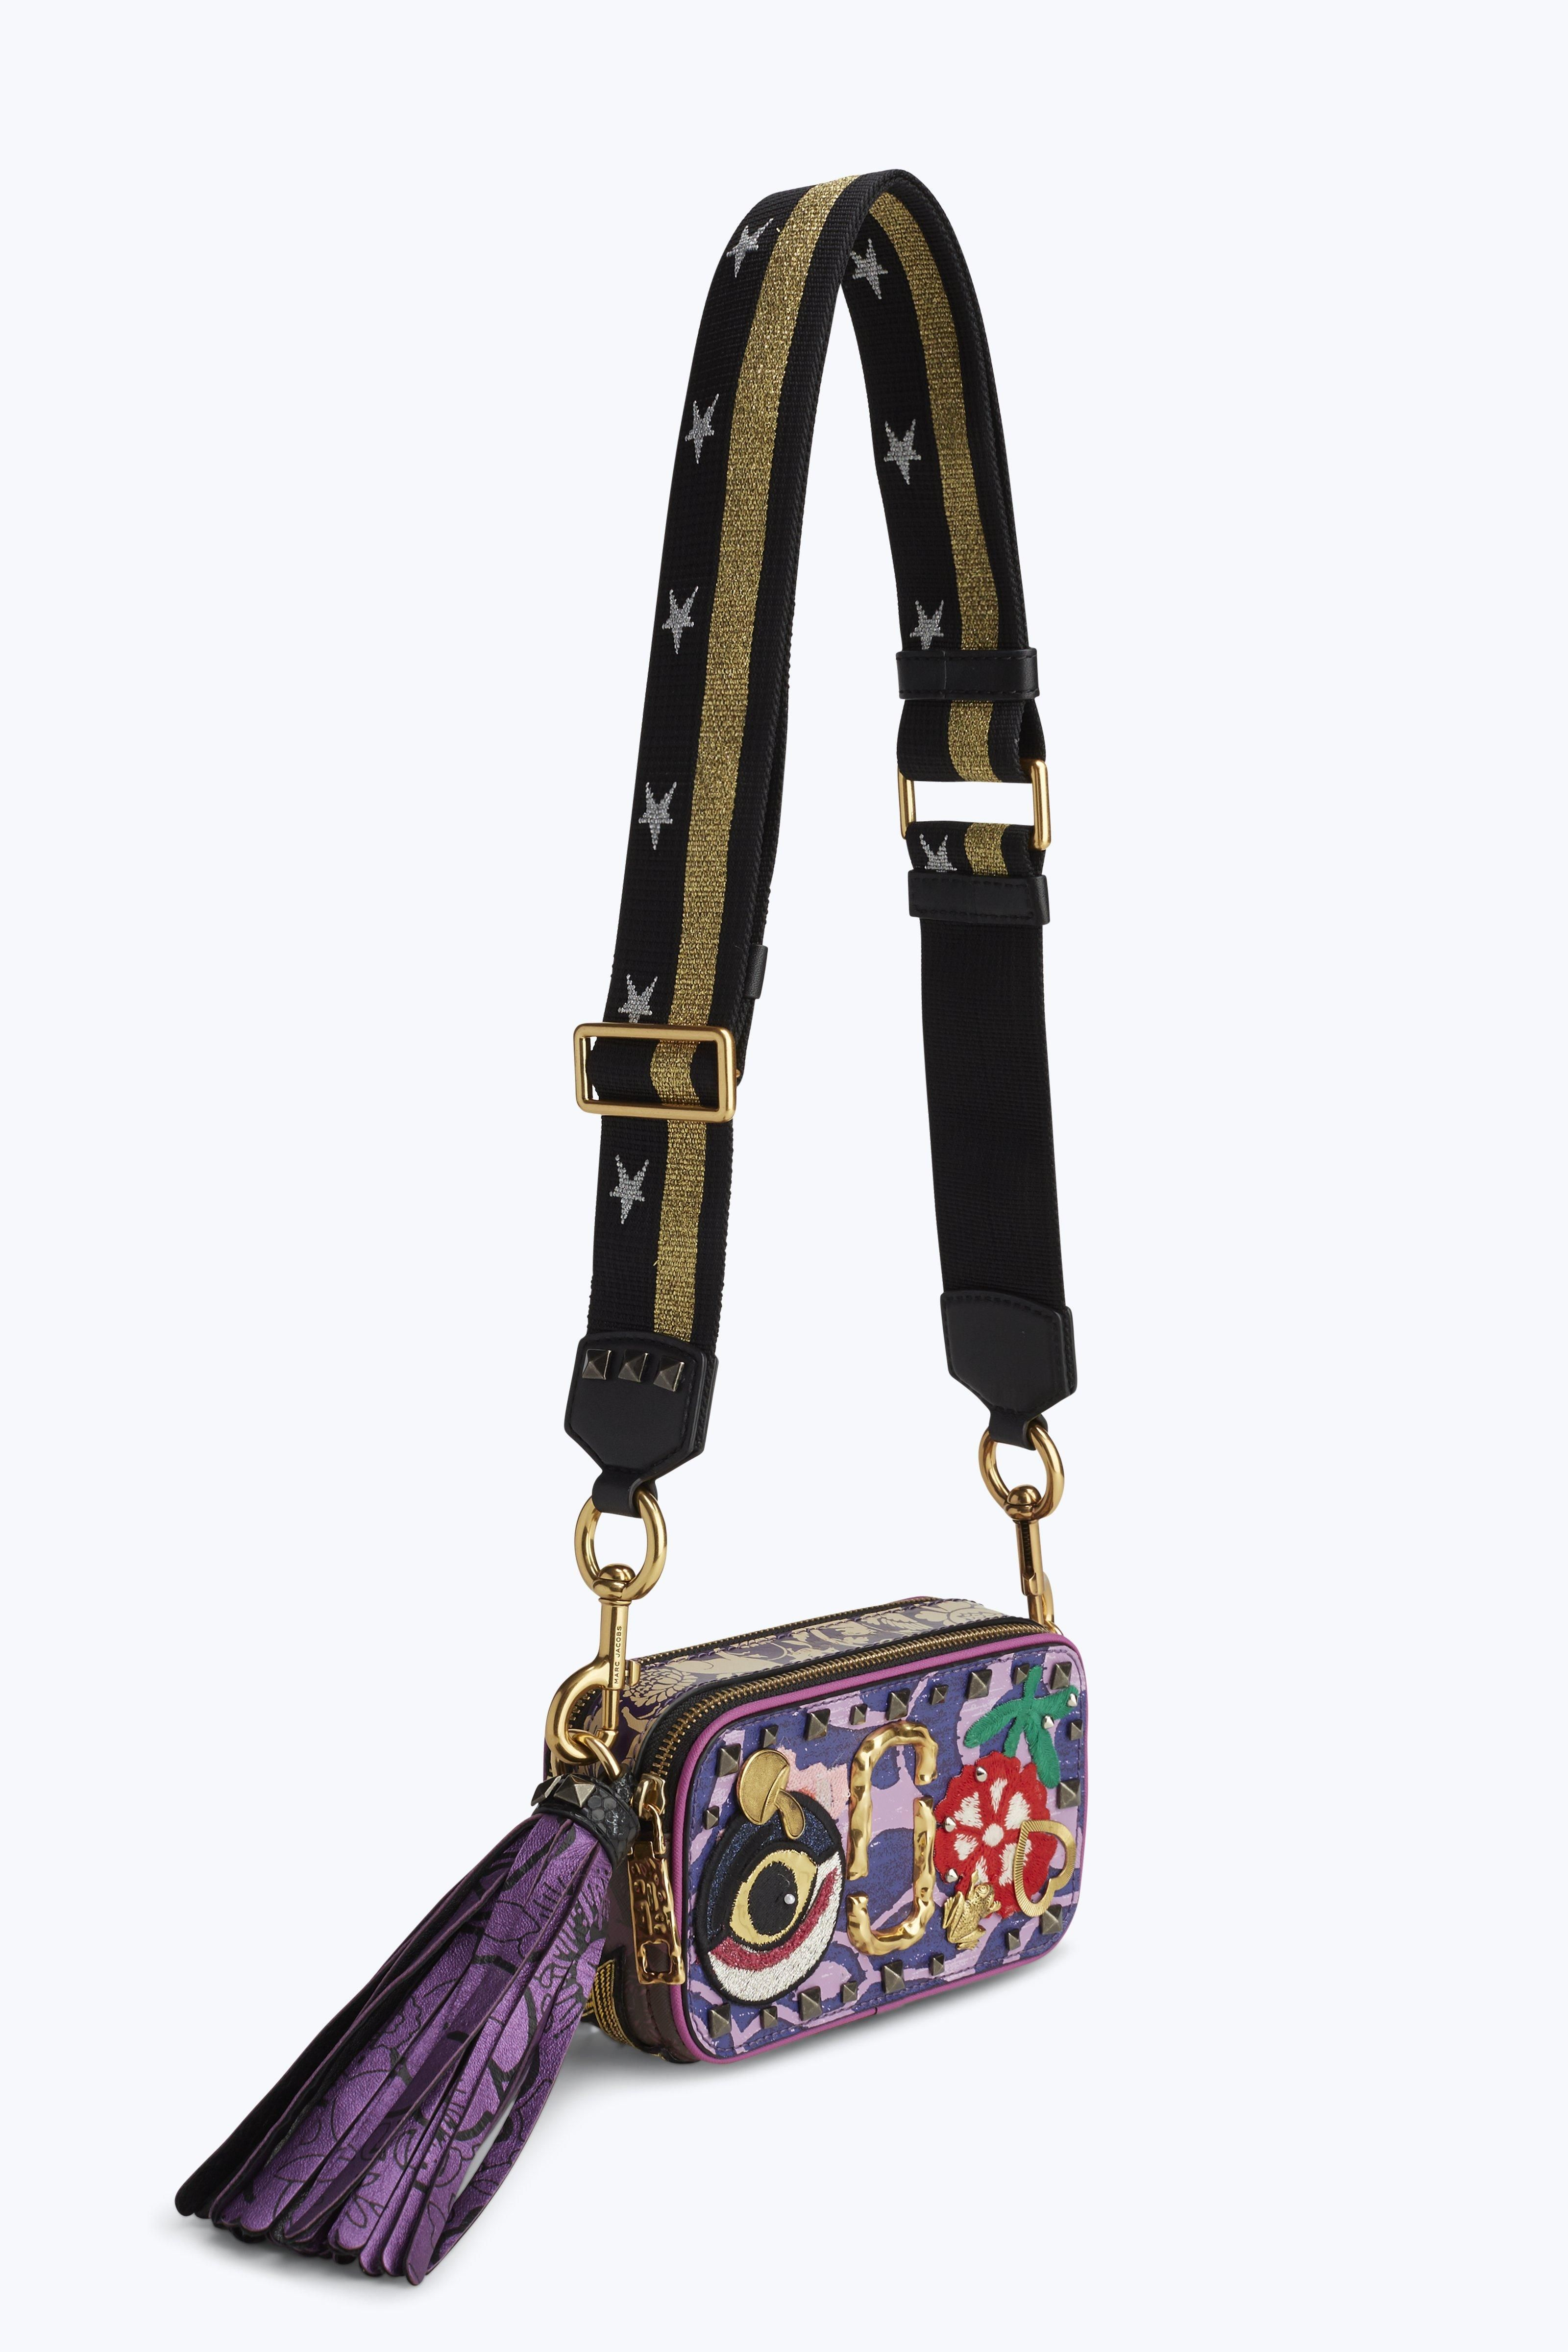 Tapestry Snapshot Camera Bag - Marc Jacobs  1a72e67c3c738